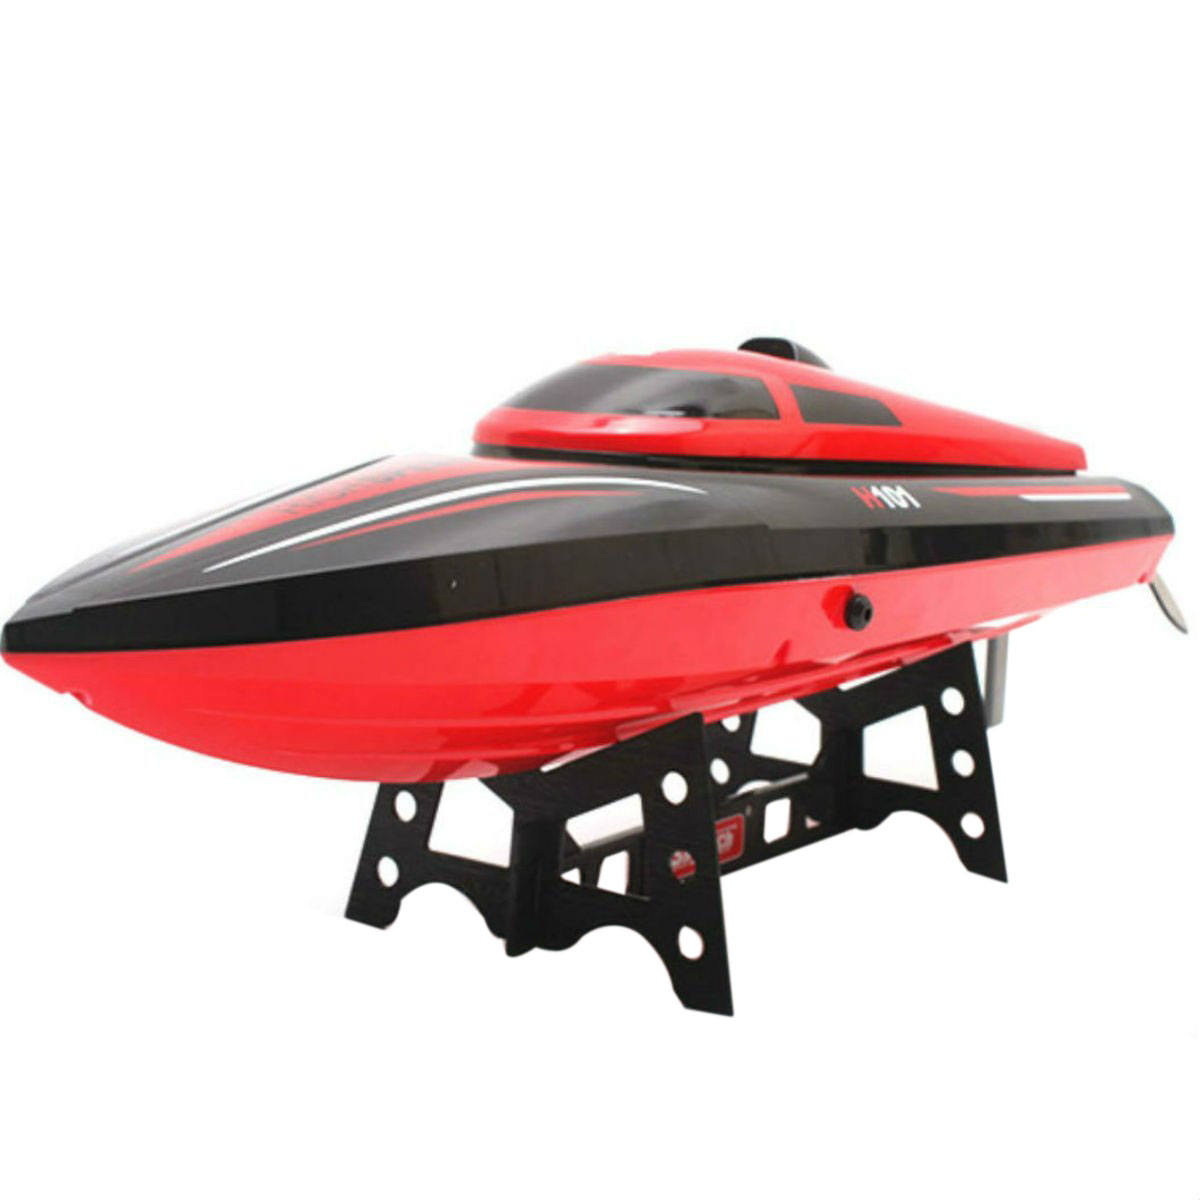 H101 2.4GHz High Speed Remote Control Electric Boat for Pools, Lakes and Outdoor AdventureH101 2.4GHz High Speed Remote Control Electric Boat for Pools, Lakes and Outdoor Adventure